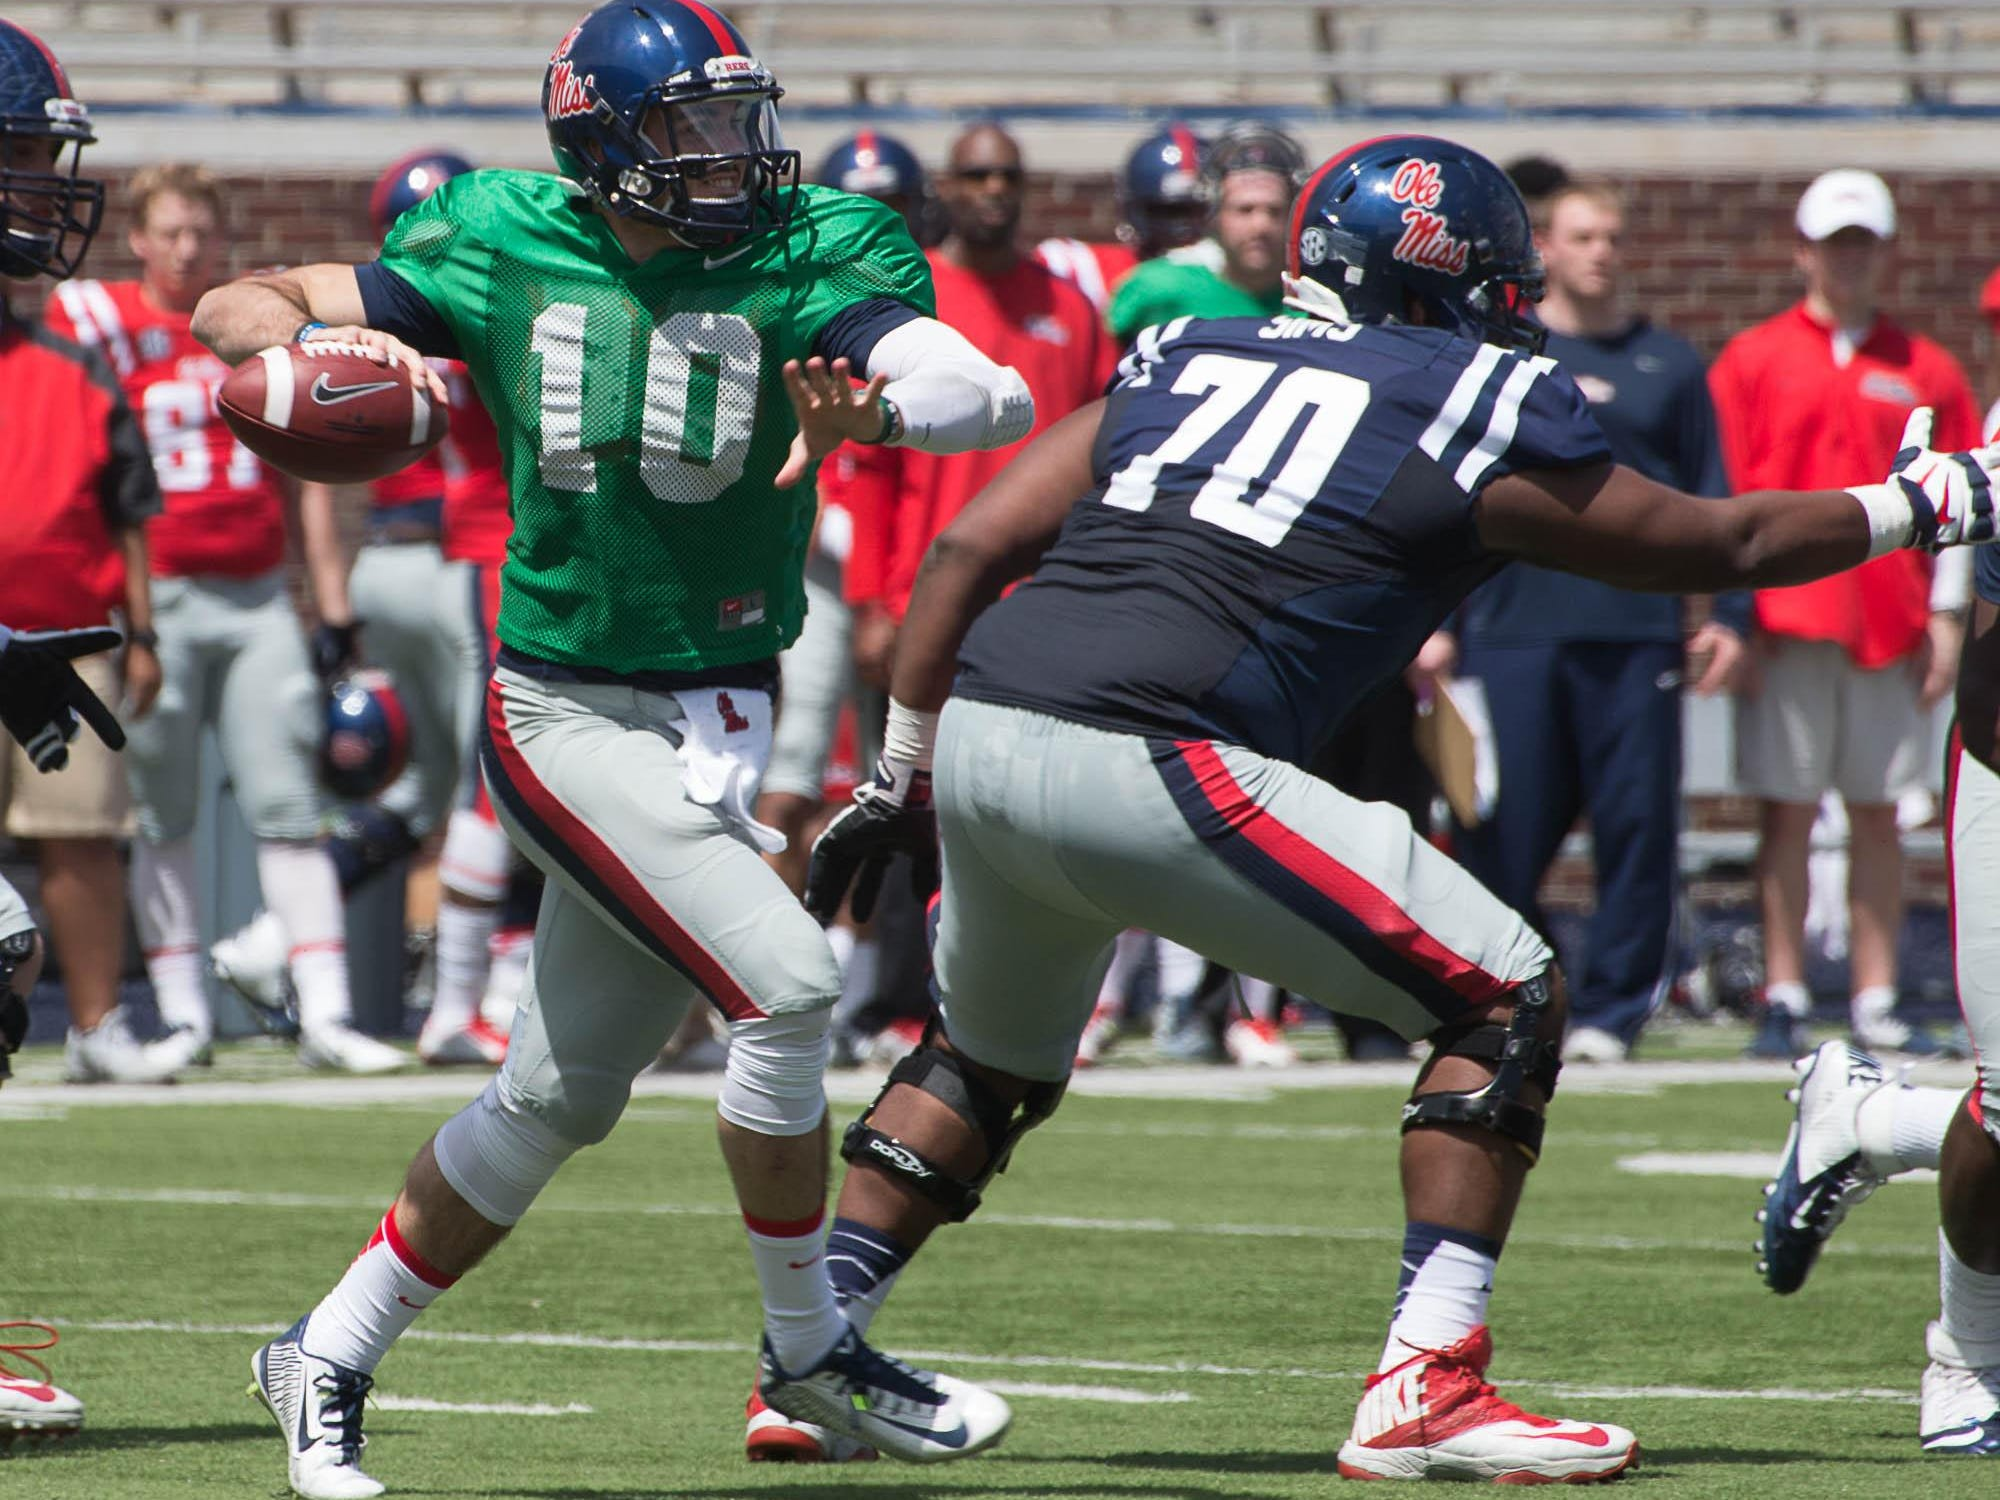 Ole Miss transfer quarterback Chad Kelly is fighting to be named the starter this season, and likely has the edge in athleticism.